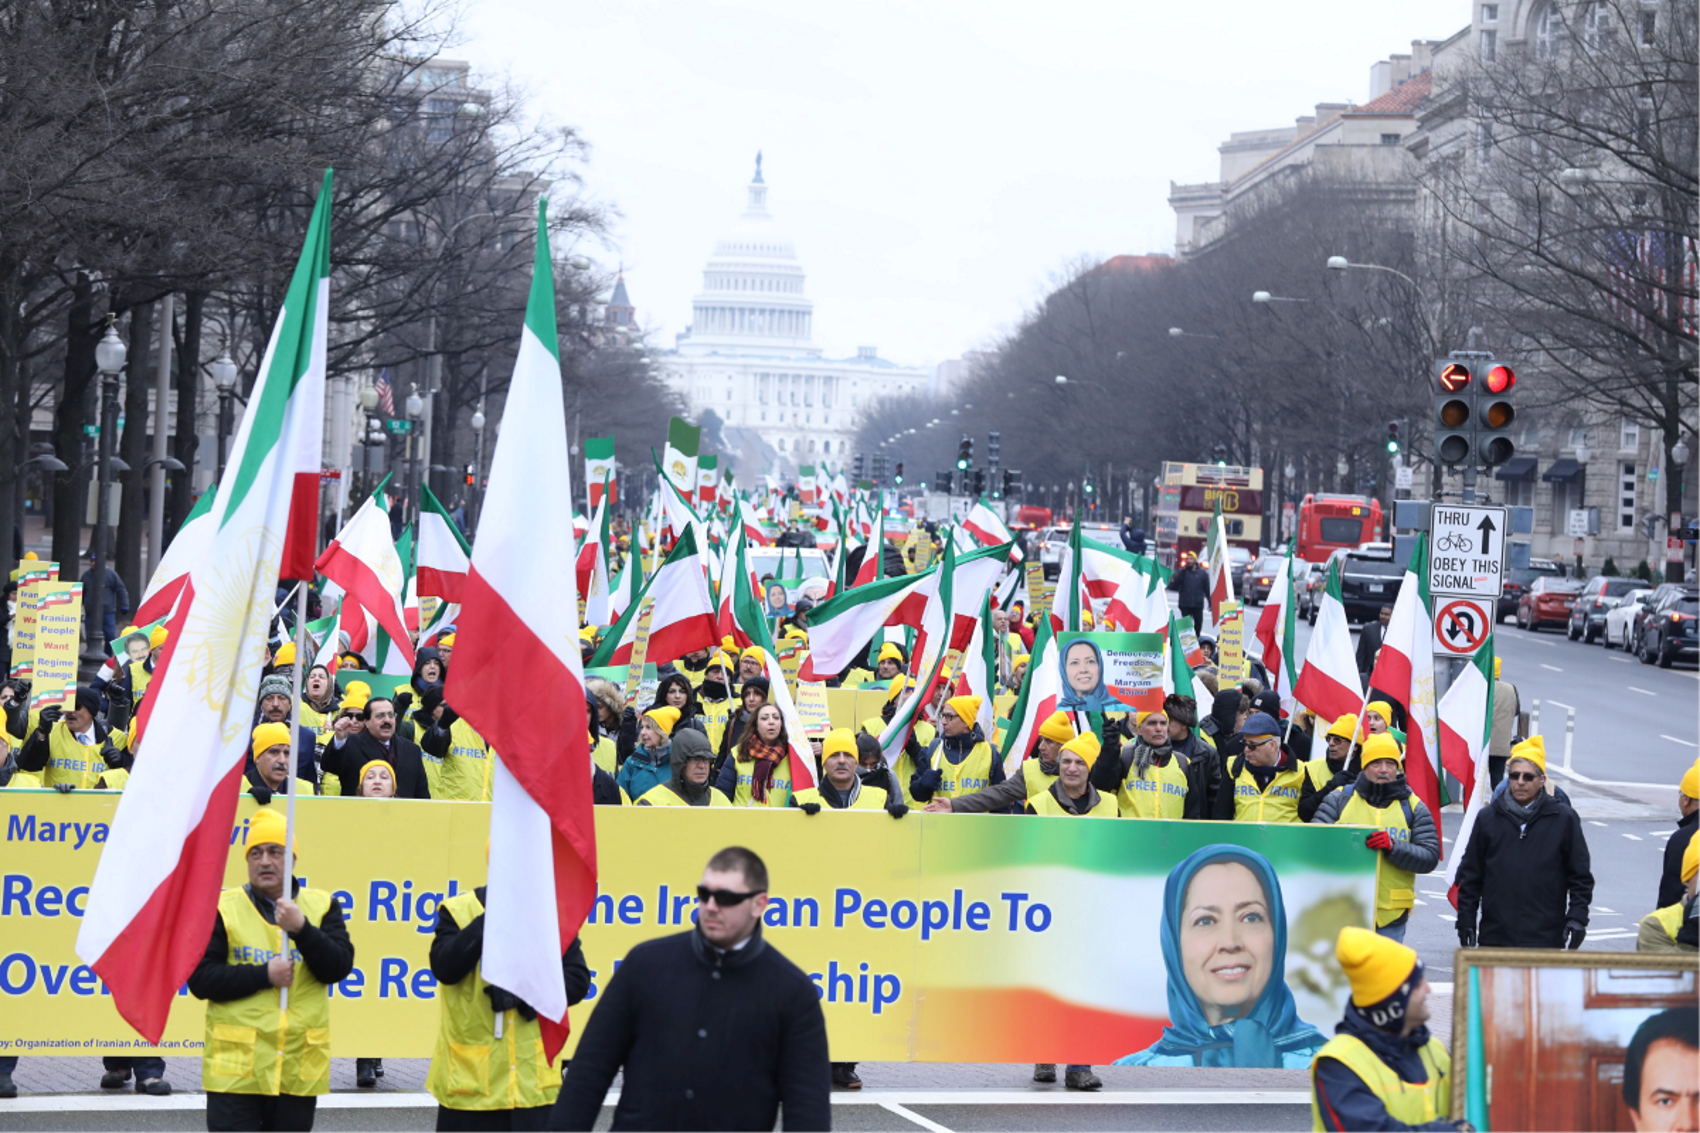 image-1-1.png IRAN FREEDOM MARCH